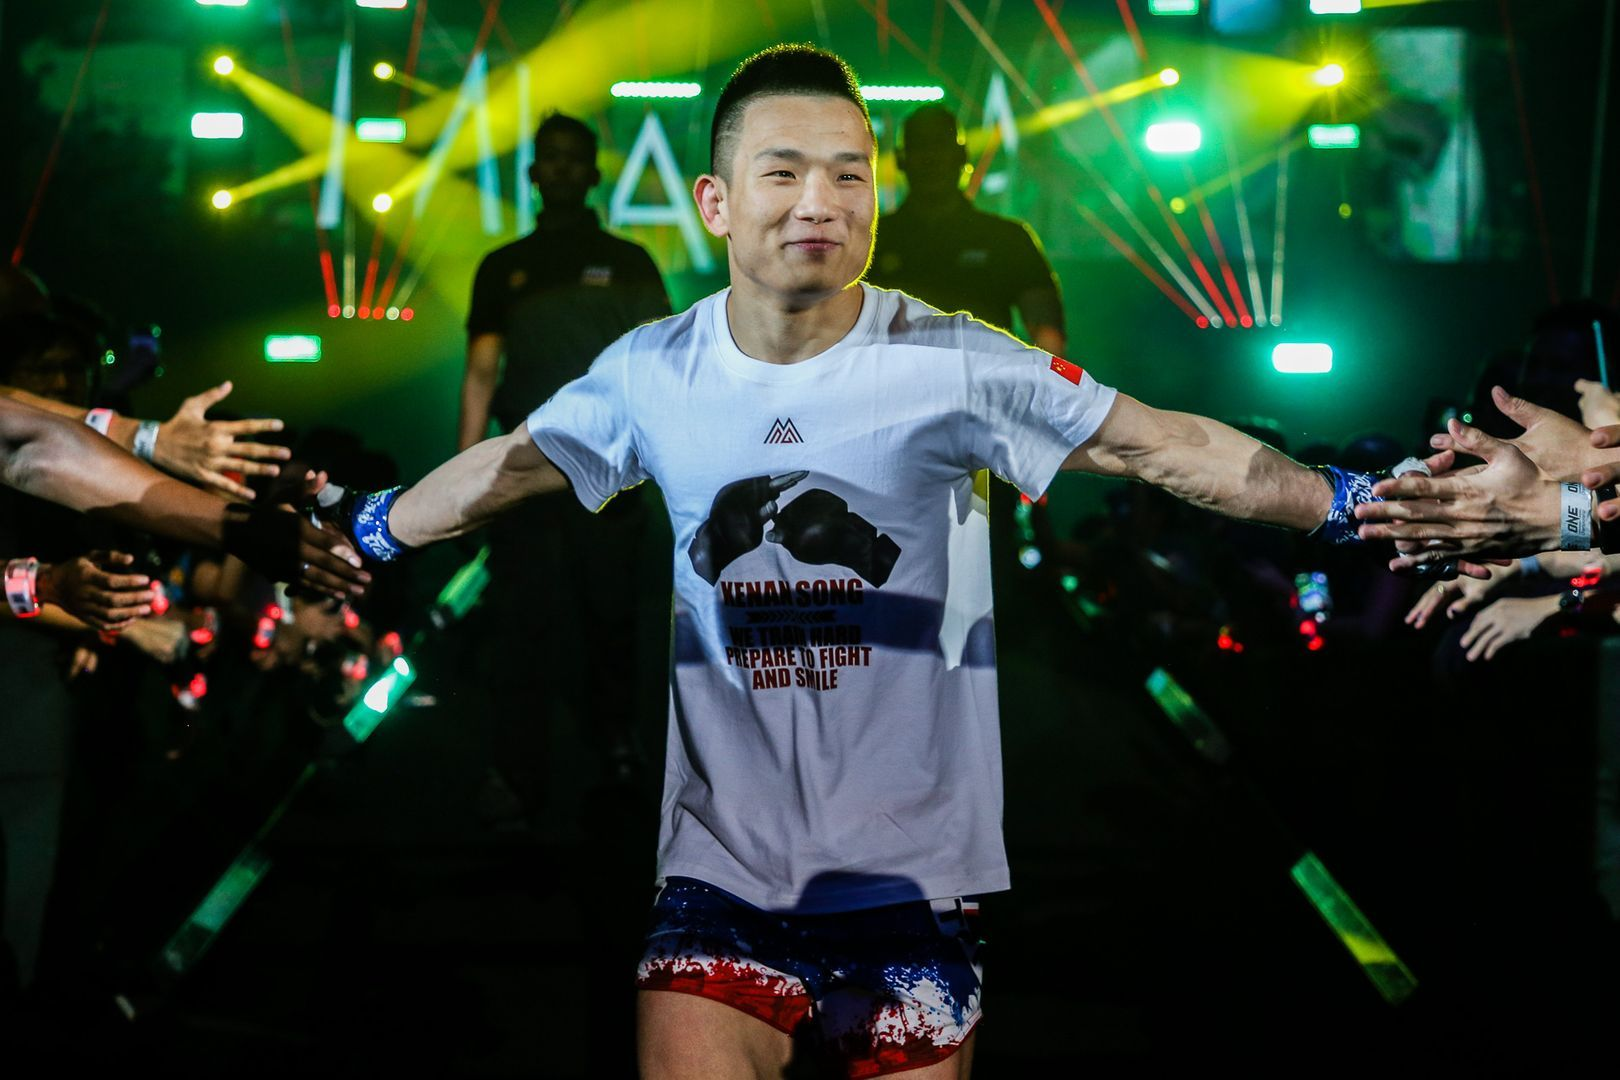 Miao Li Tao enters the Singapore Indoor Stadium to face Dejdamrong Sor Amnuaysirichoke at ONE: ENTER THE DRAGON